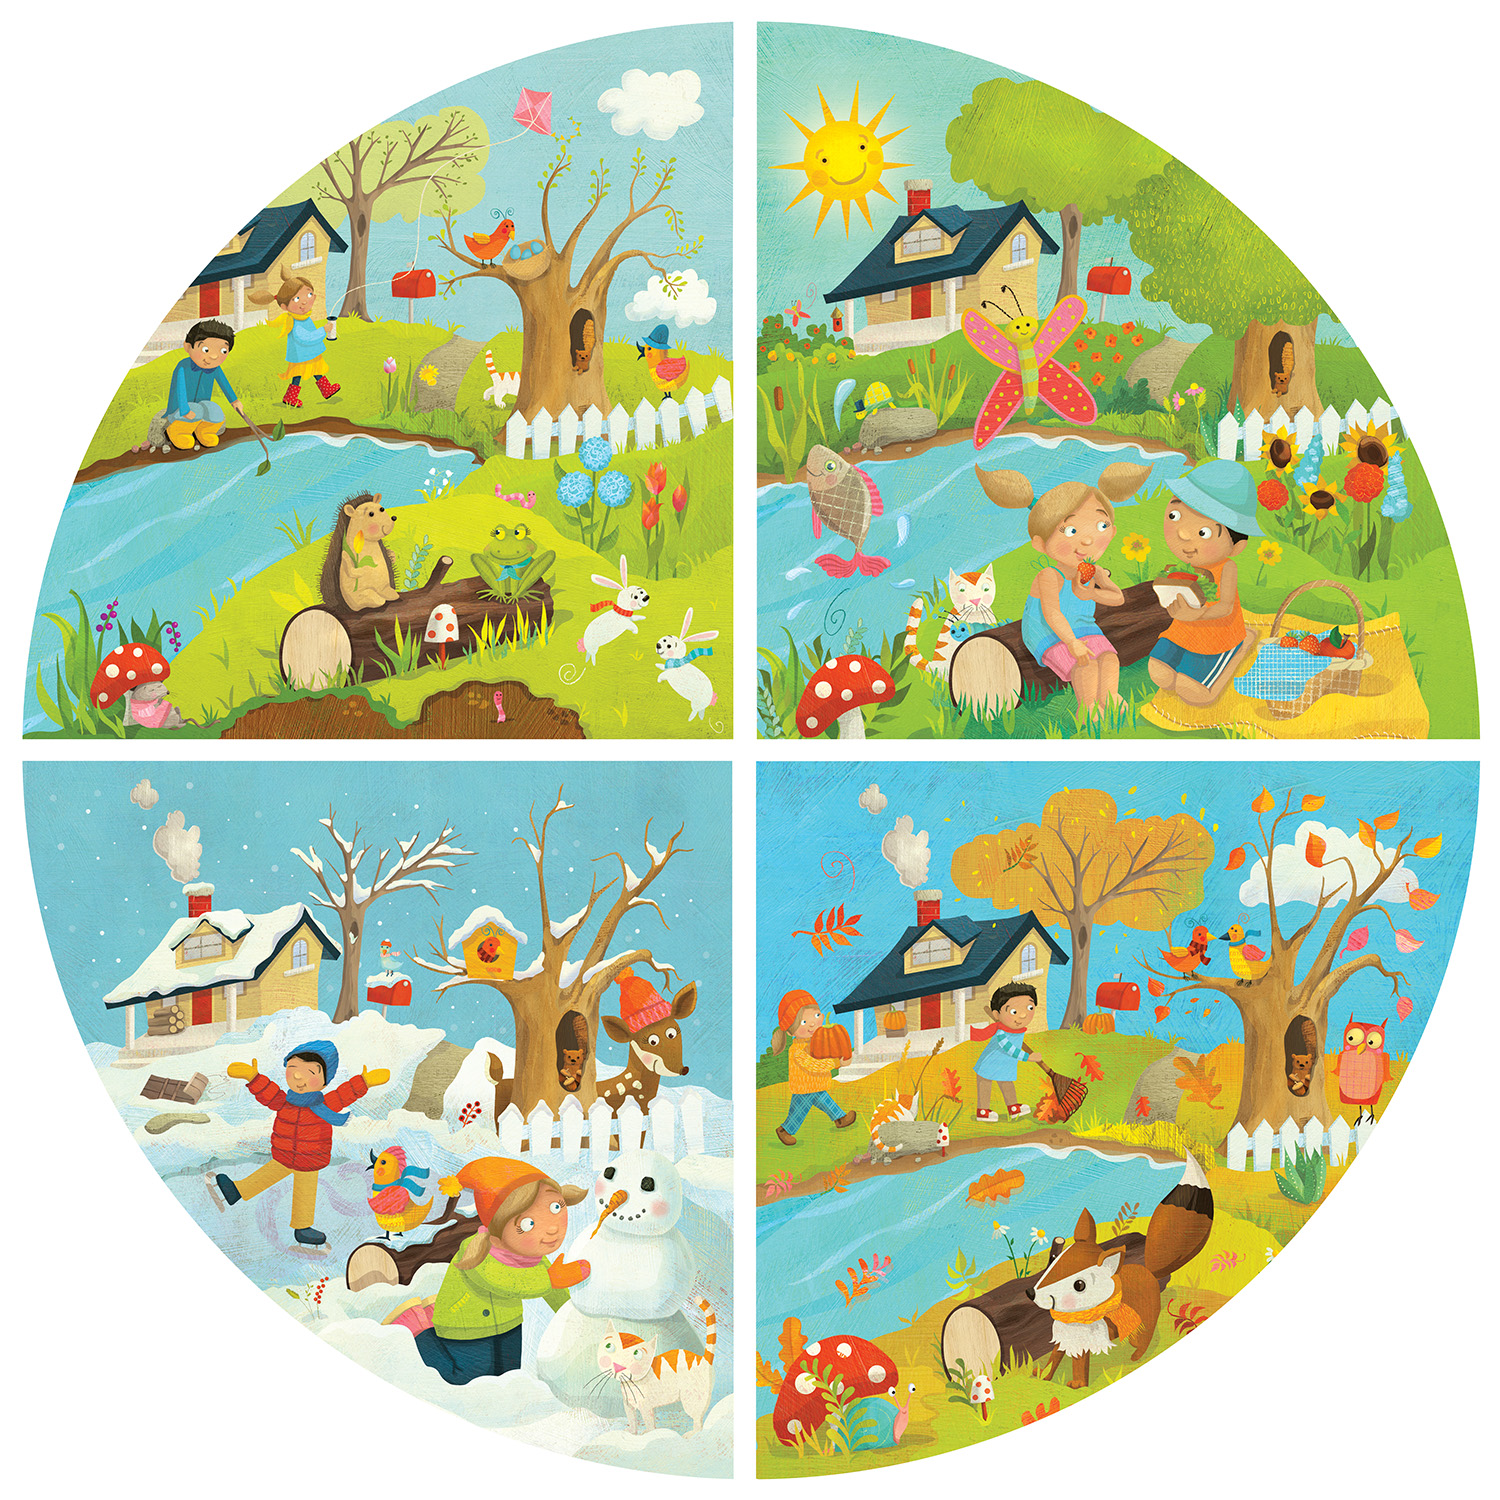 Laura Watson Illustration Four Seasons Puzzle